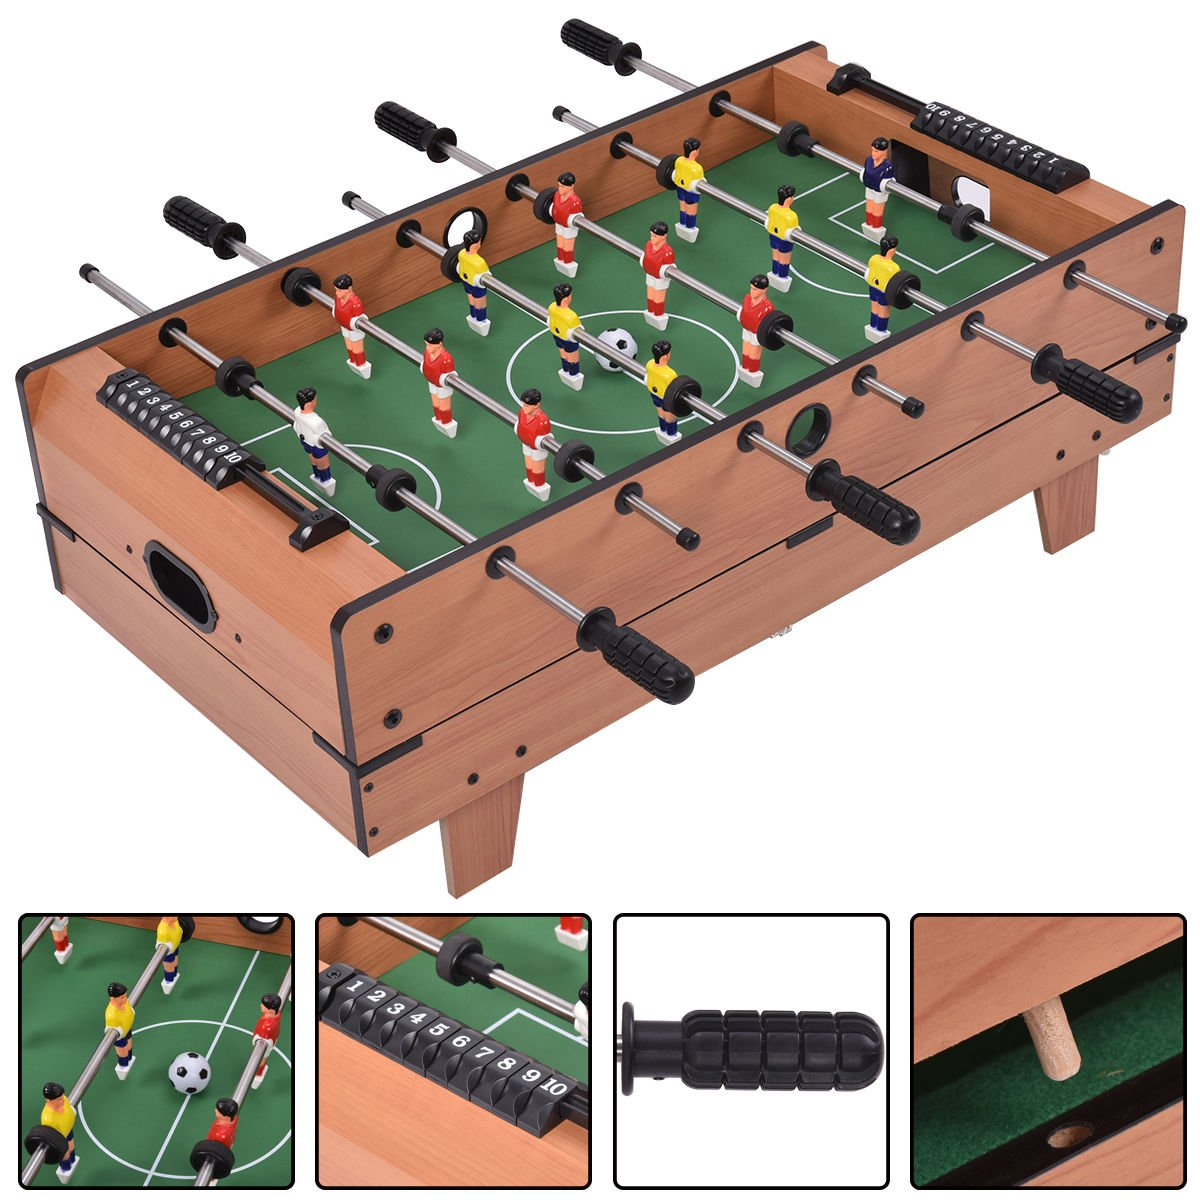 Amazon.com : Giantex 4 In 1 Multi Game Table Pool Air Hockey Foosball Table  Tennis Billiard Combination Game : Sports U0026 Outdoors